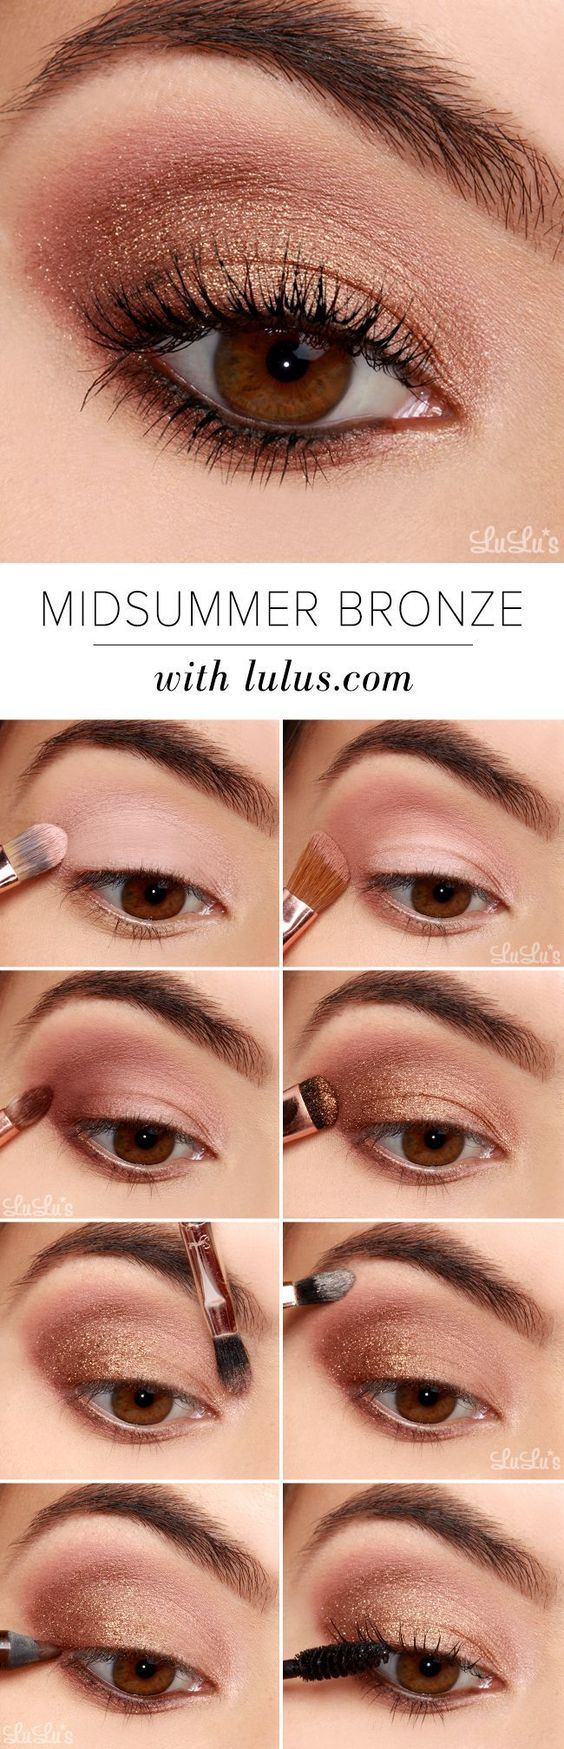 20 easy step by step eyeshadow tutorials for beginners her style code beautiful bronze blend step by step eyeshadow tutorials for beginners baditri Gallery